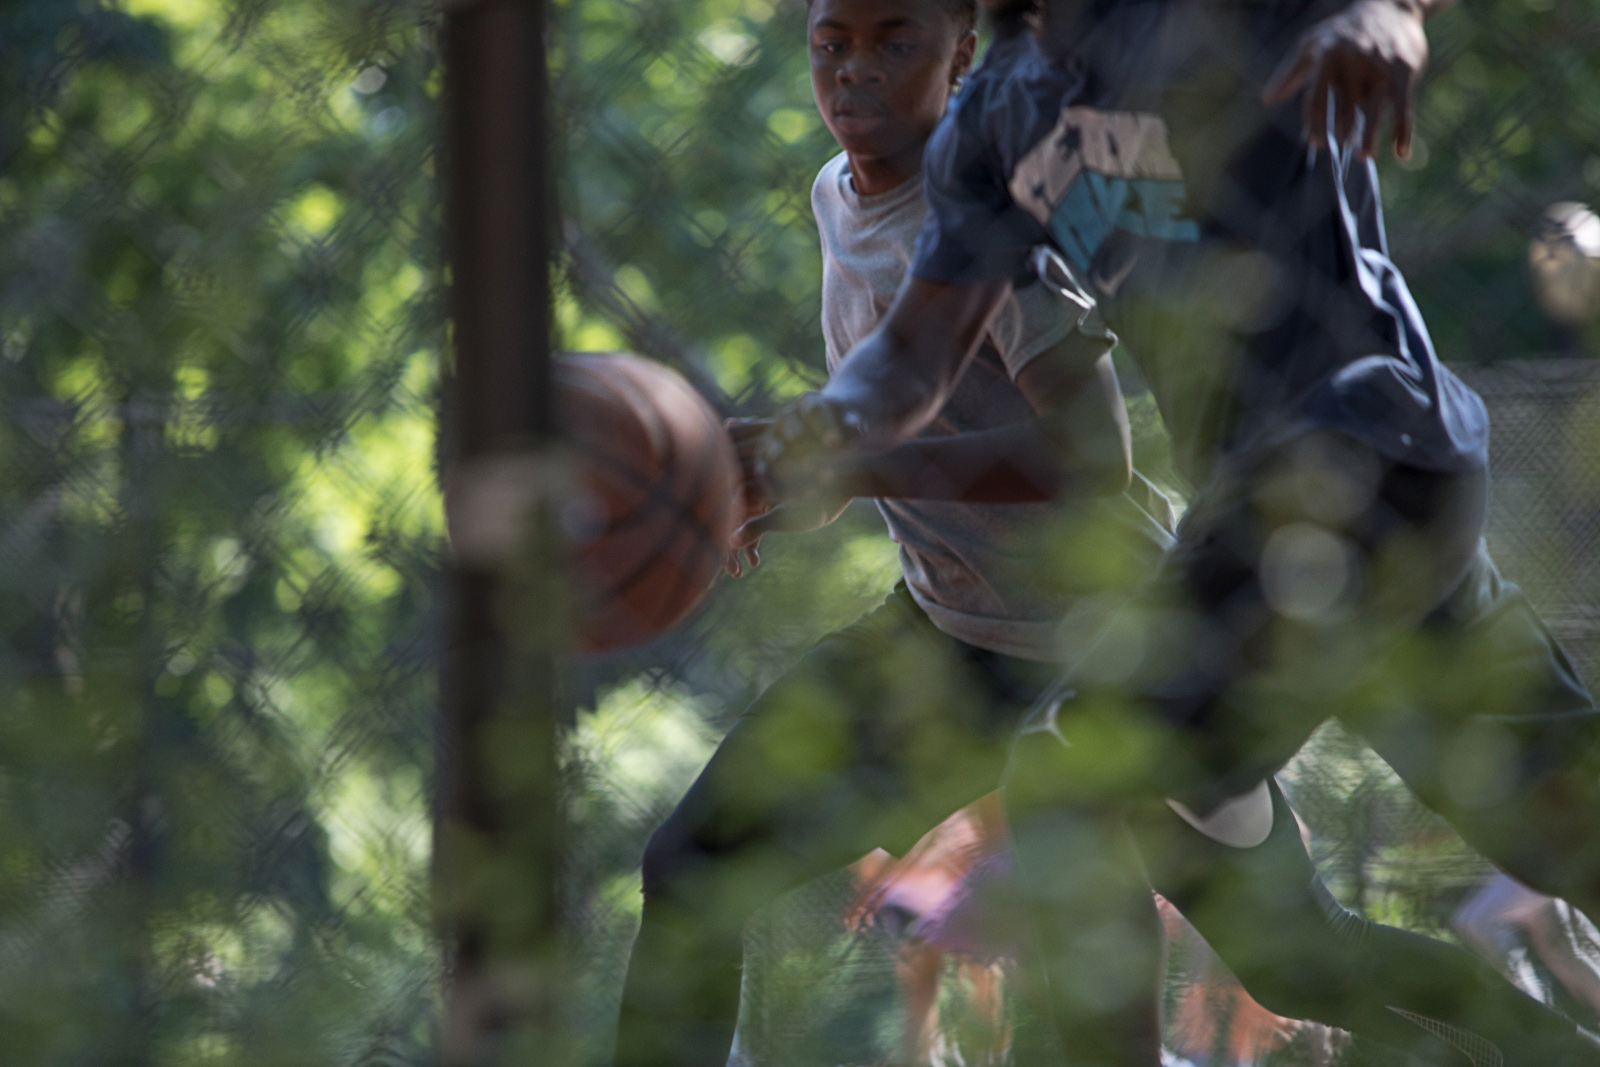 180612_Basketball_Thompkins_Square_0149